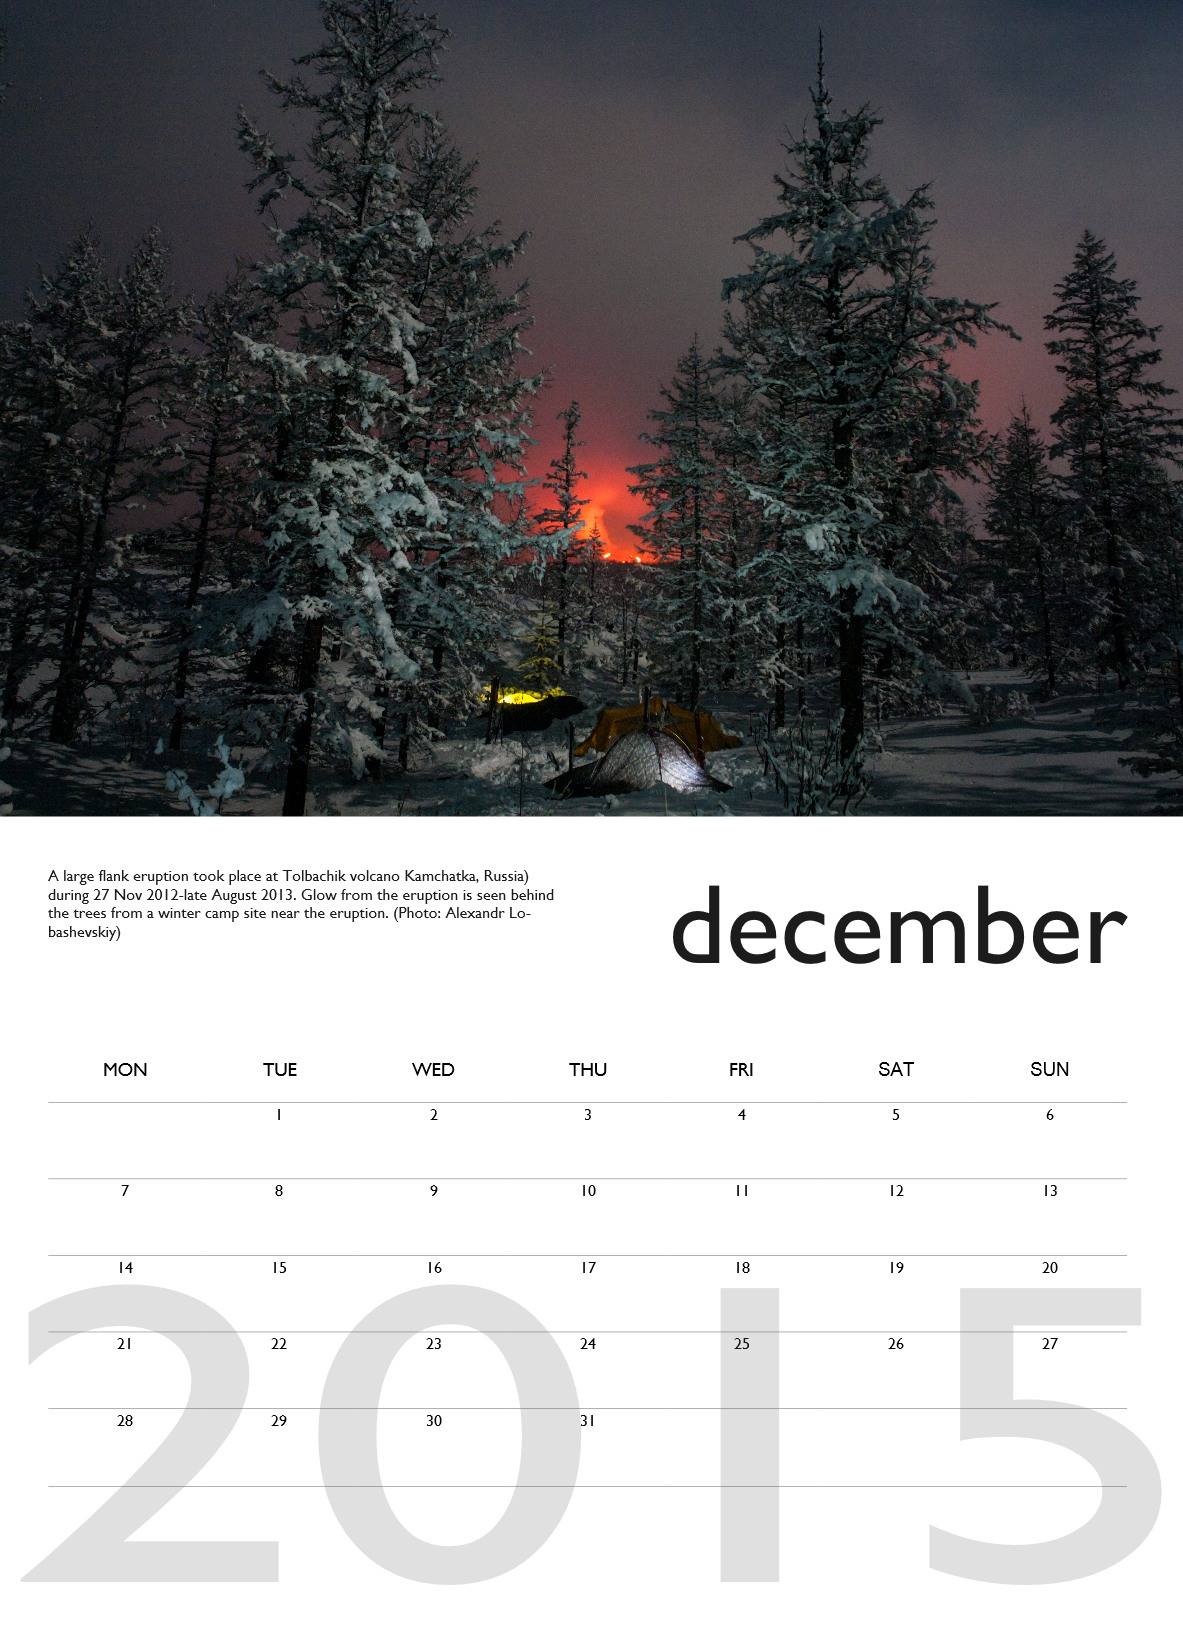 December preview